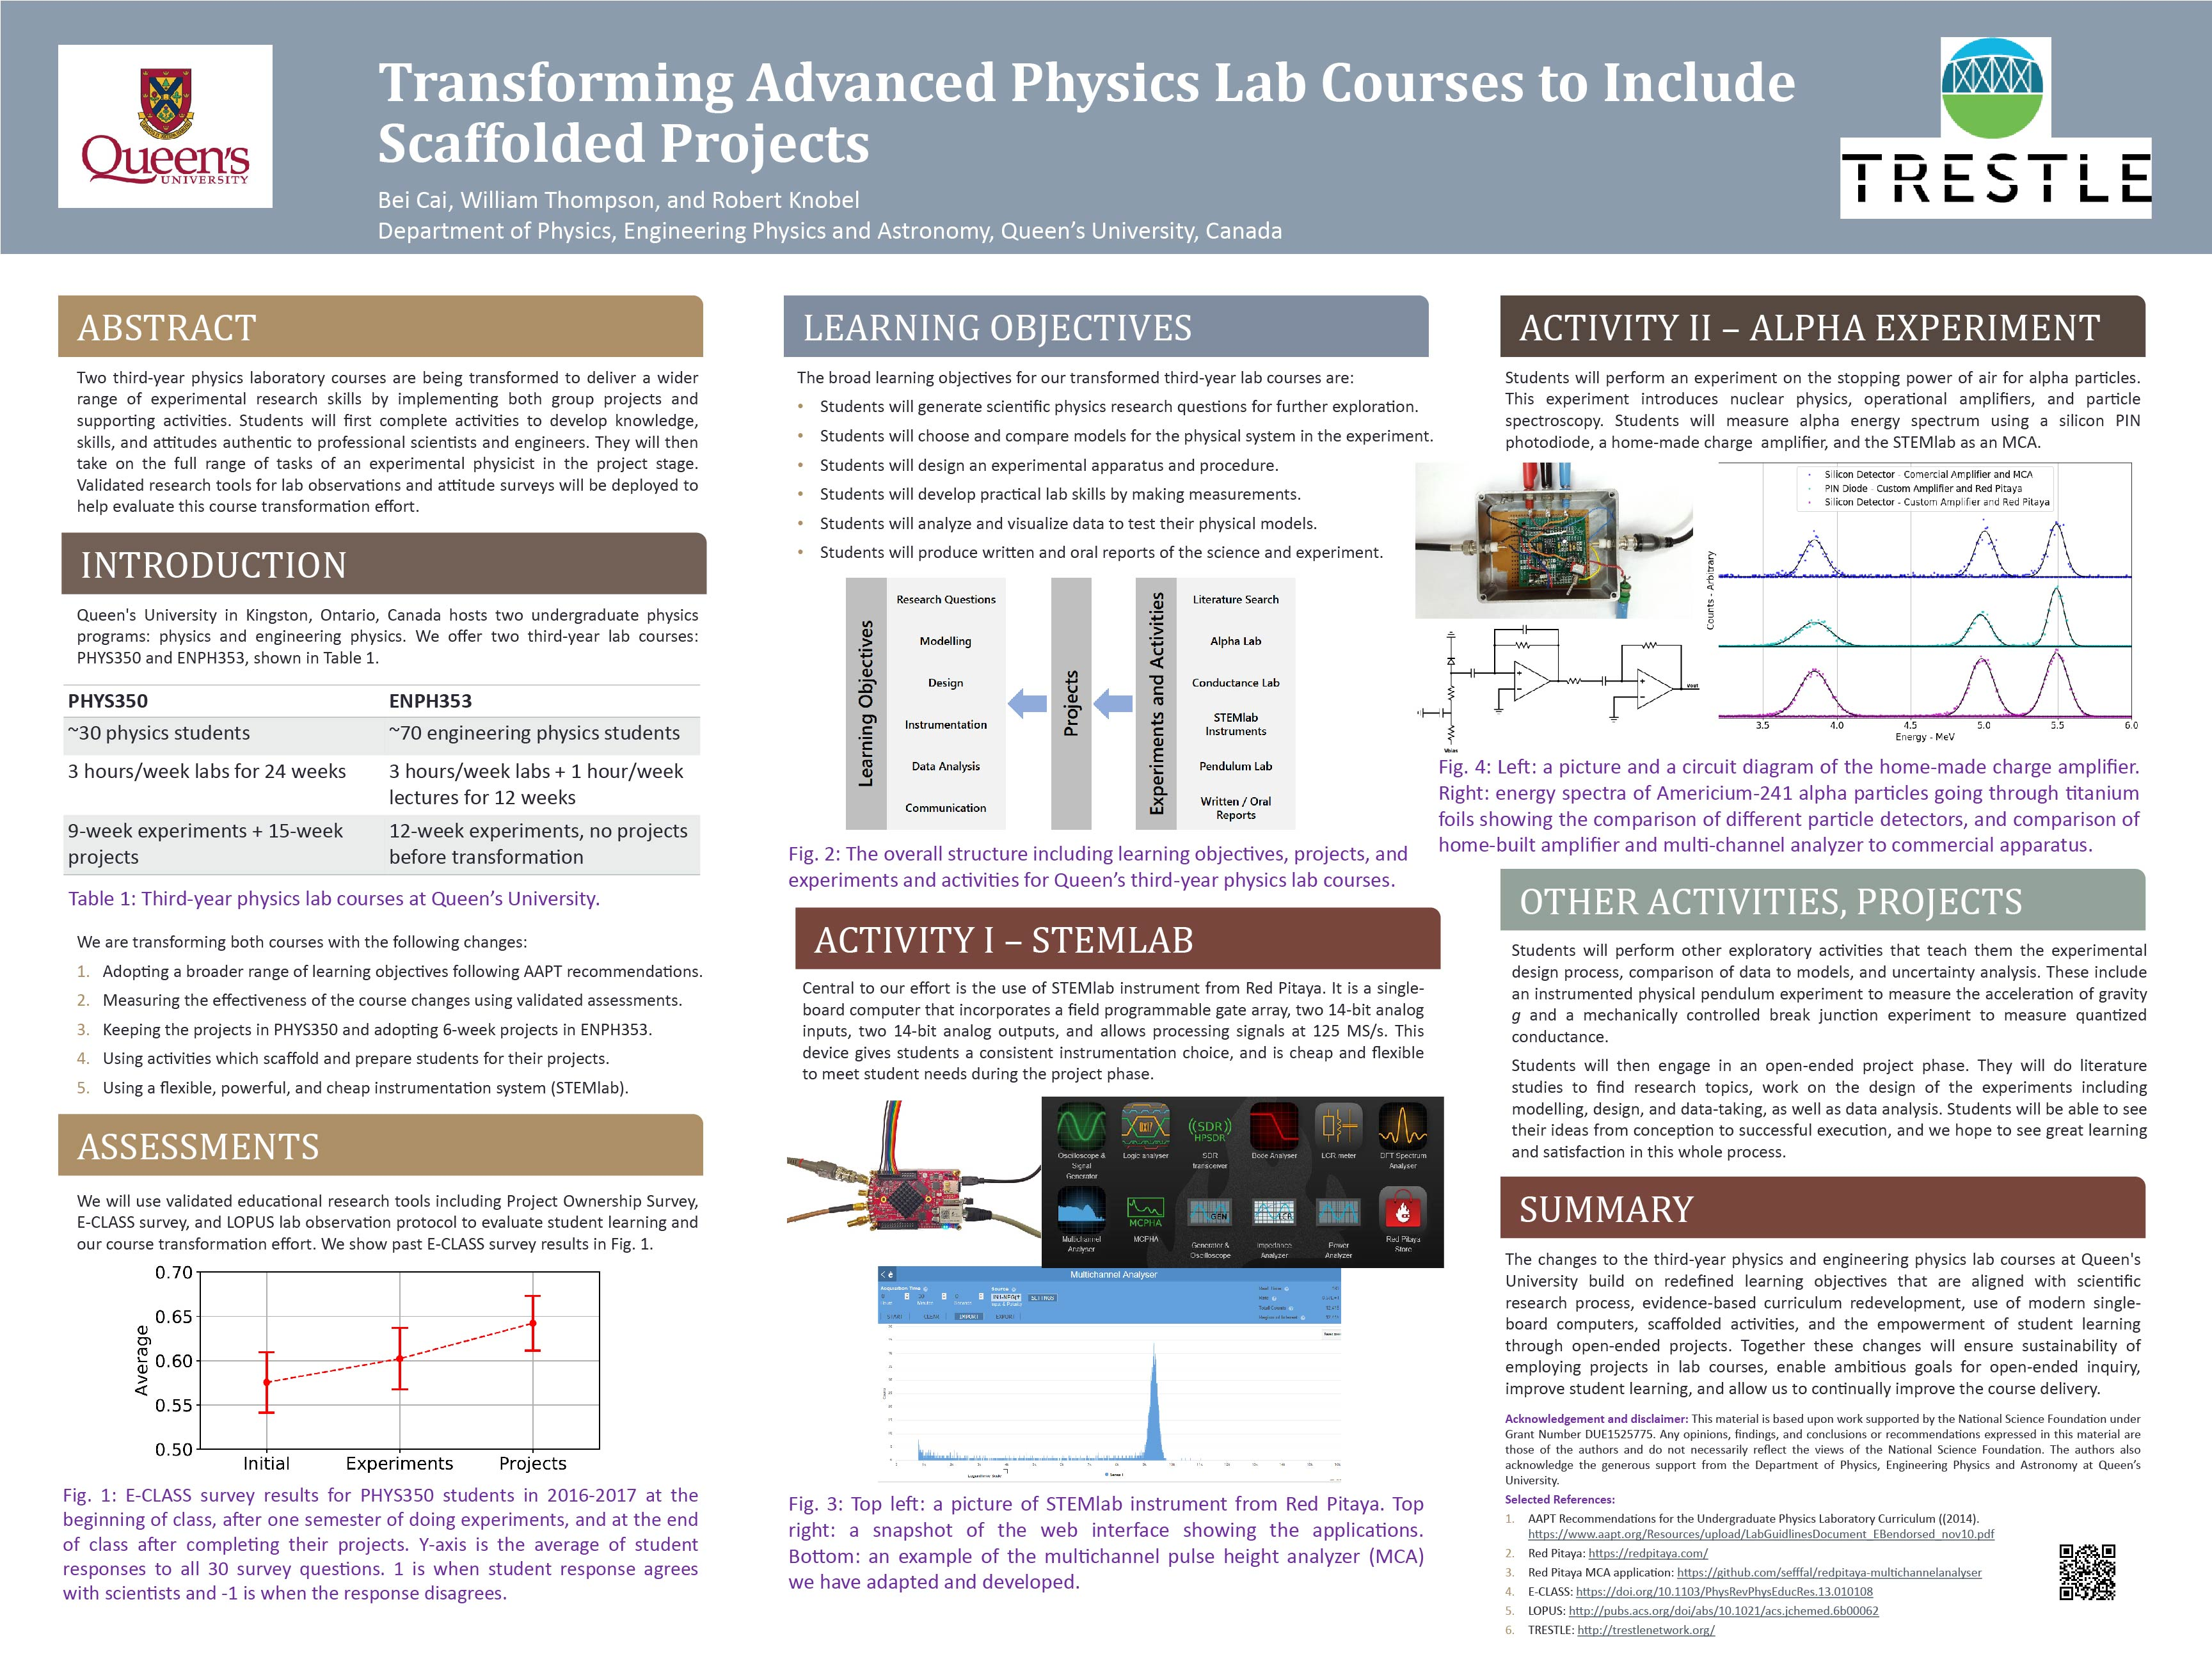 advancing physics research coursework Transforming physics education by using the tools of physics in their teaching, instructors can move students from mindless memorization to understanding and appreciation.